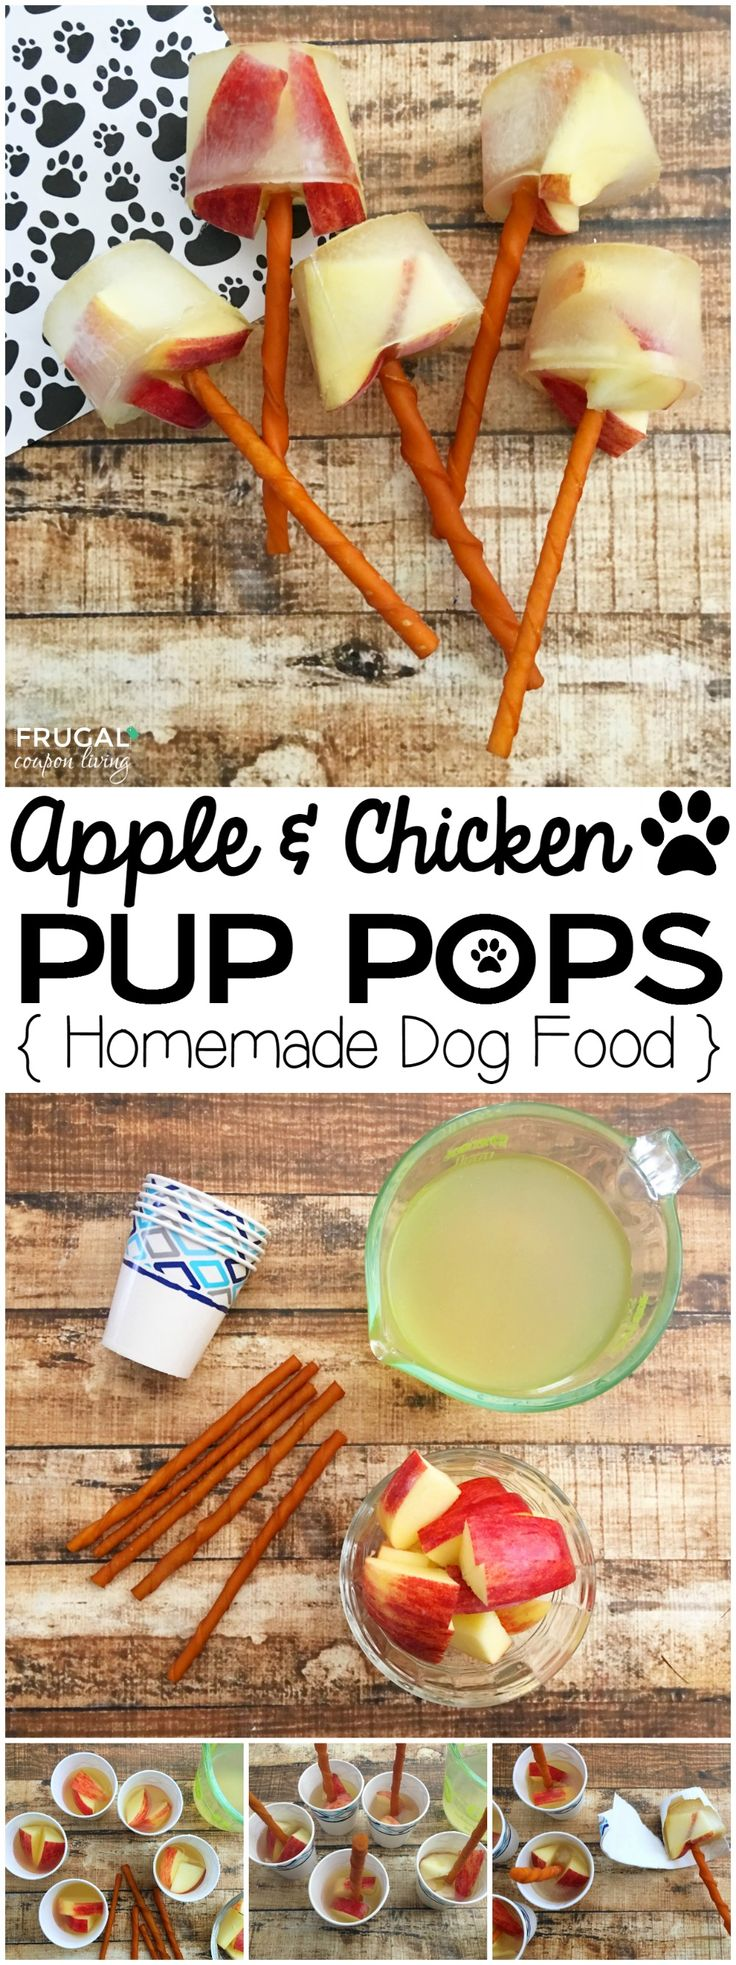 Apple & Chicken Pup-Pops: The perfect treat for summer!